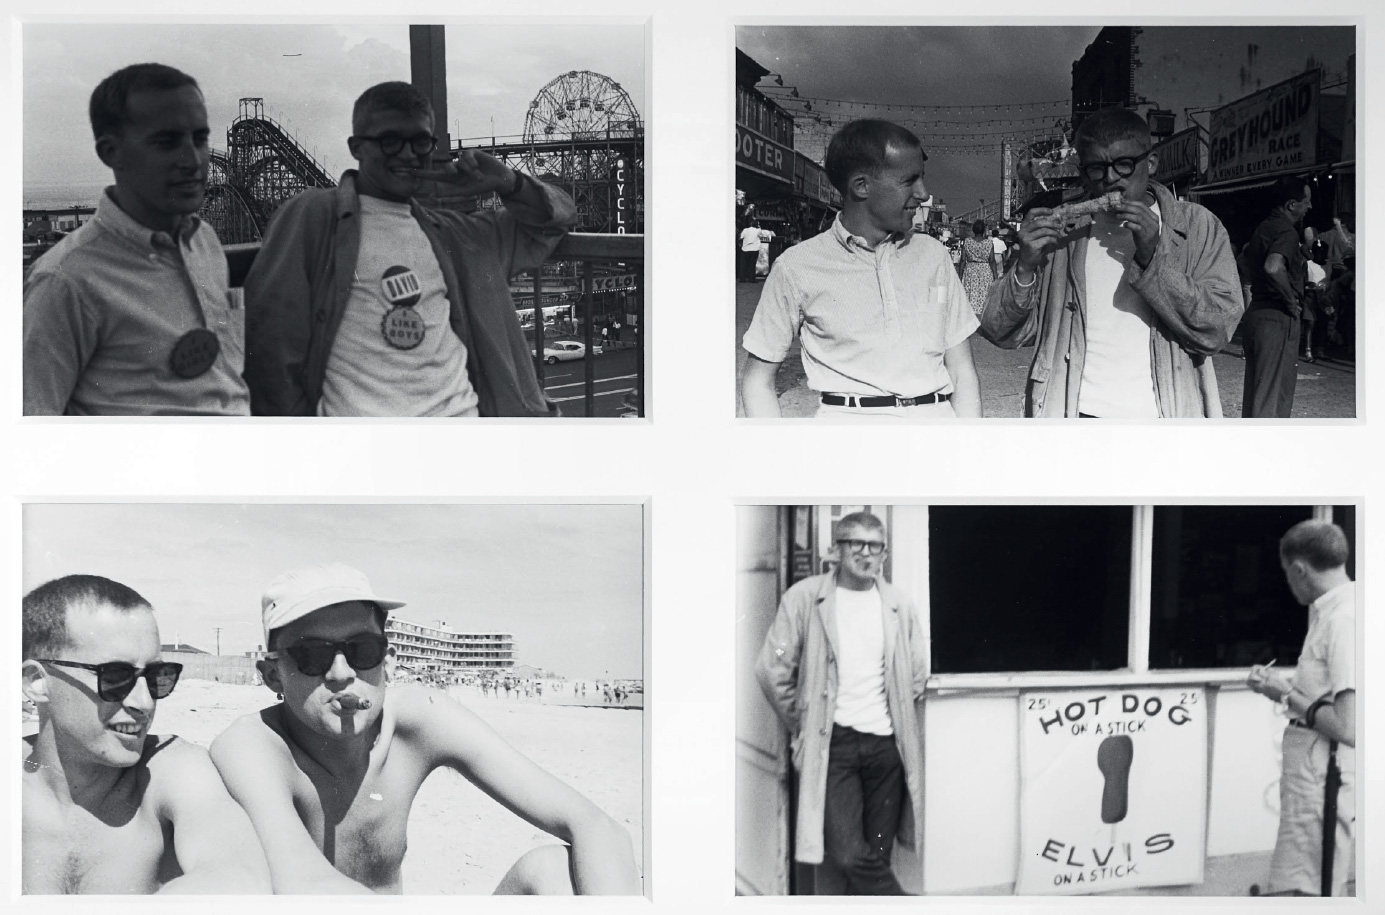 Barrie Bates and David Hockney, Coney Island, New York 1961. Photo Billy Apple from noted.co.nz